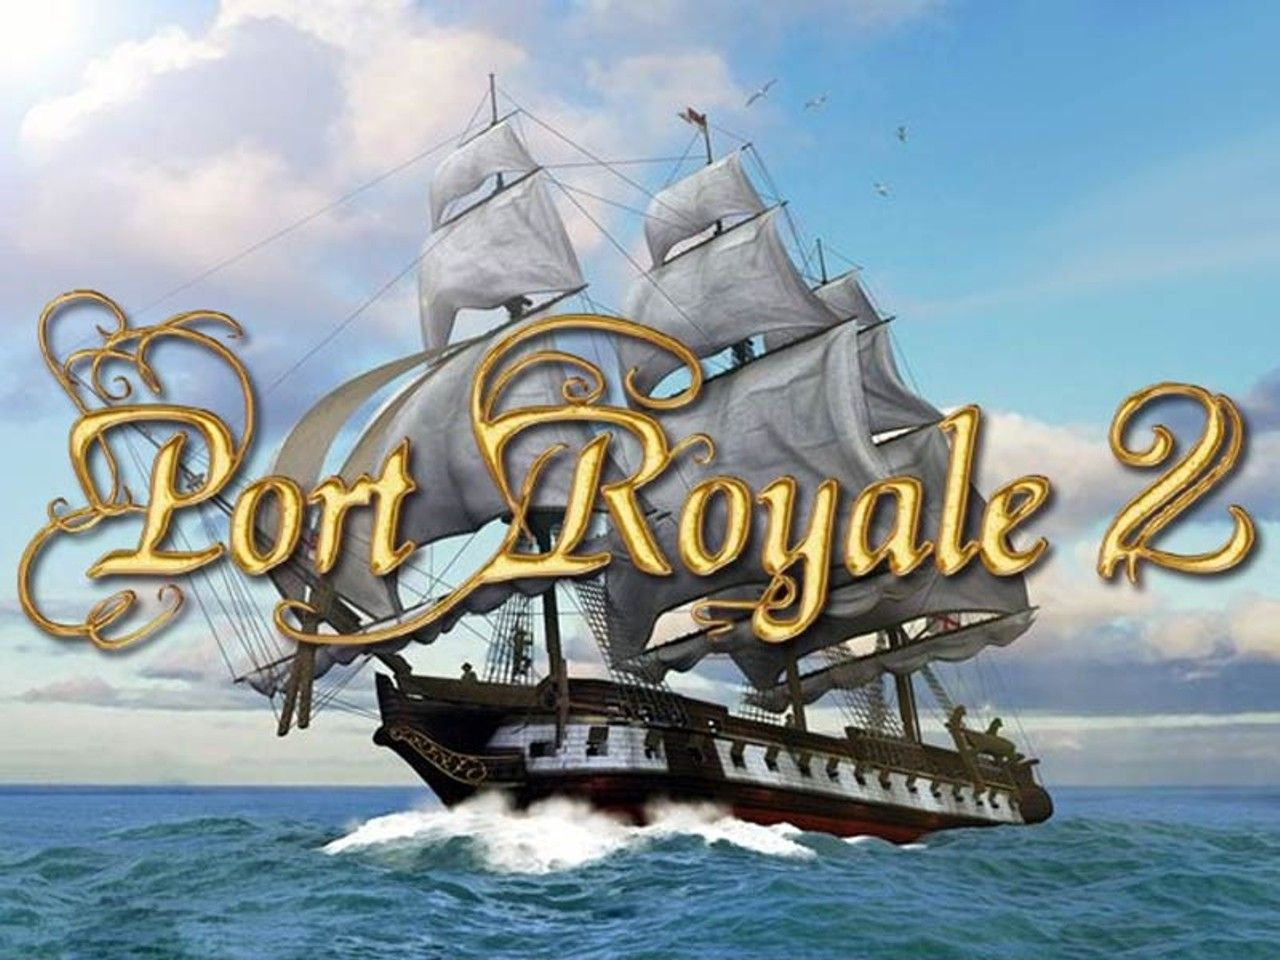 Port Royale 2 / Порт-Рояль (Steam / REGION FREE)